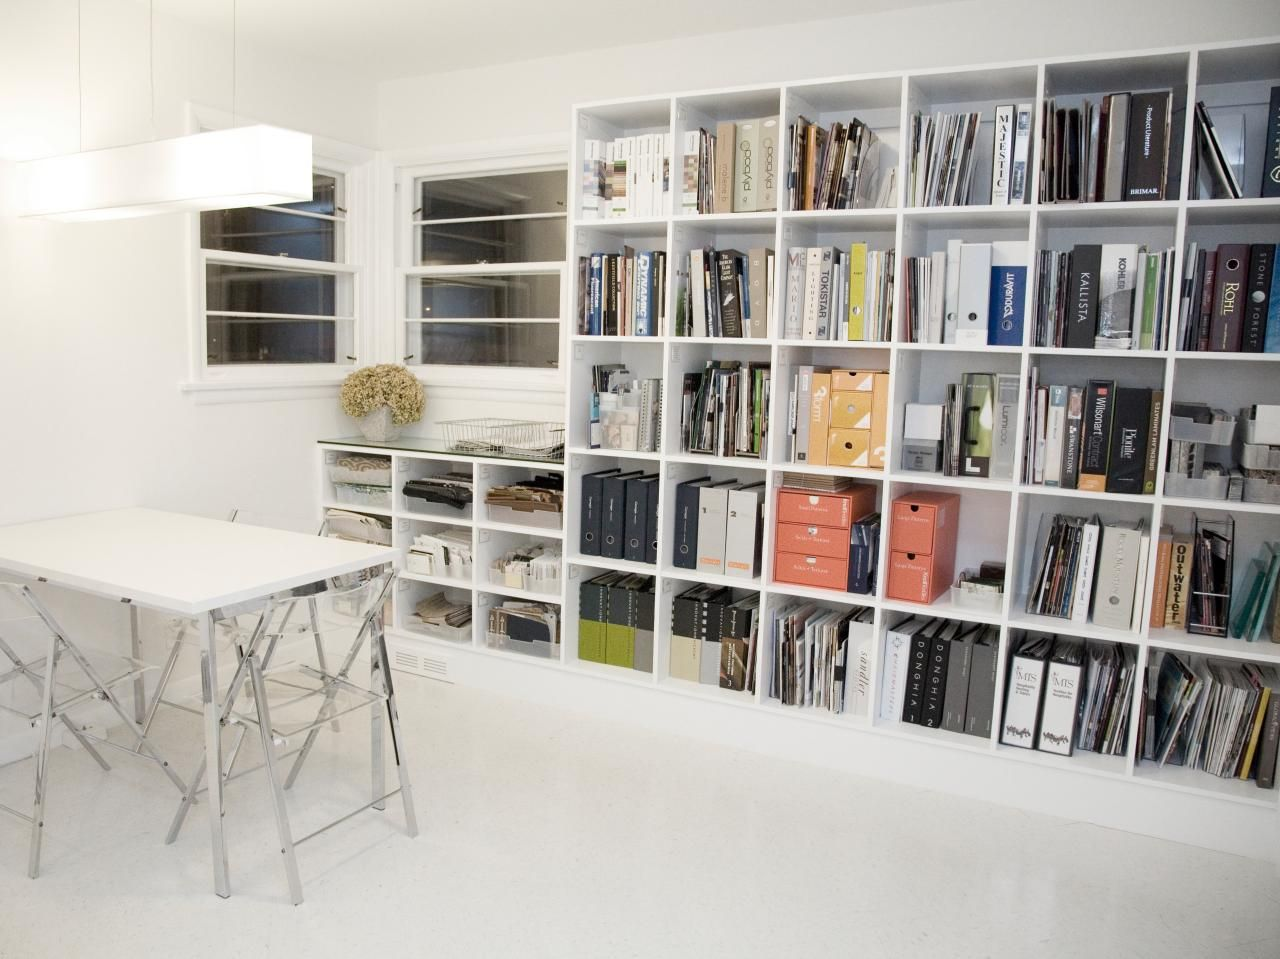 bookshelves for office. Books, Binders And Office Supplies Are All Within Site, But Cube Shelving Prevents A Bookshelves For M